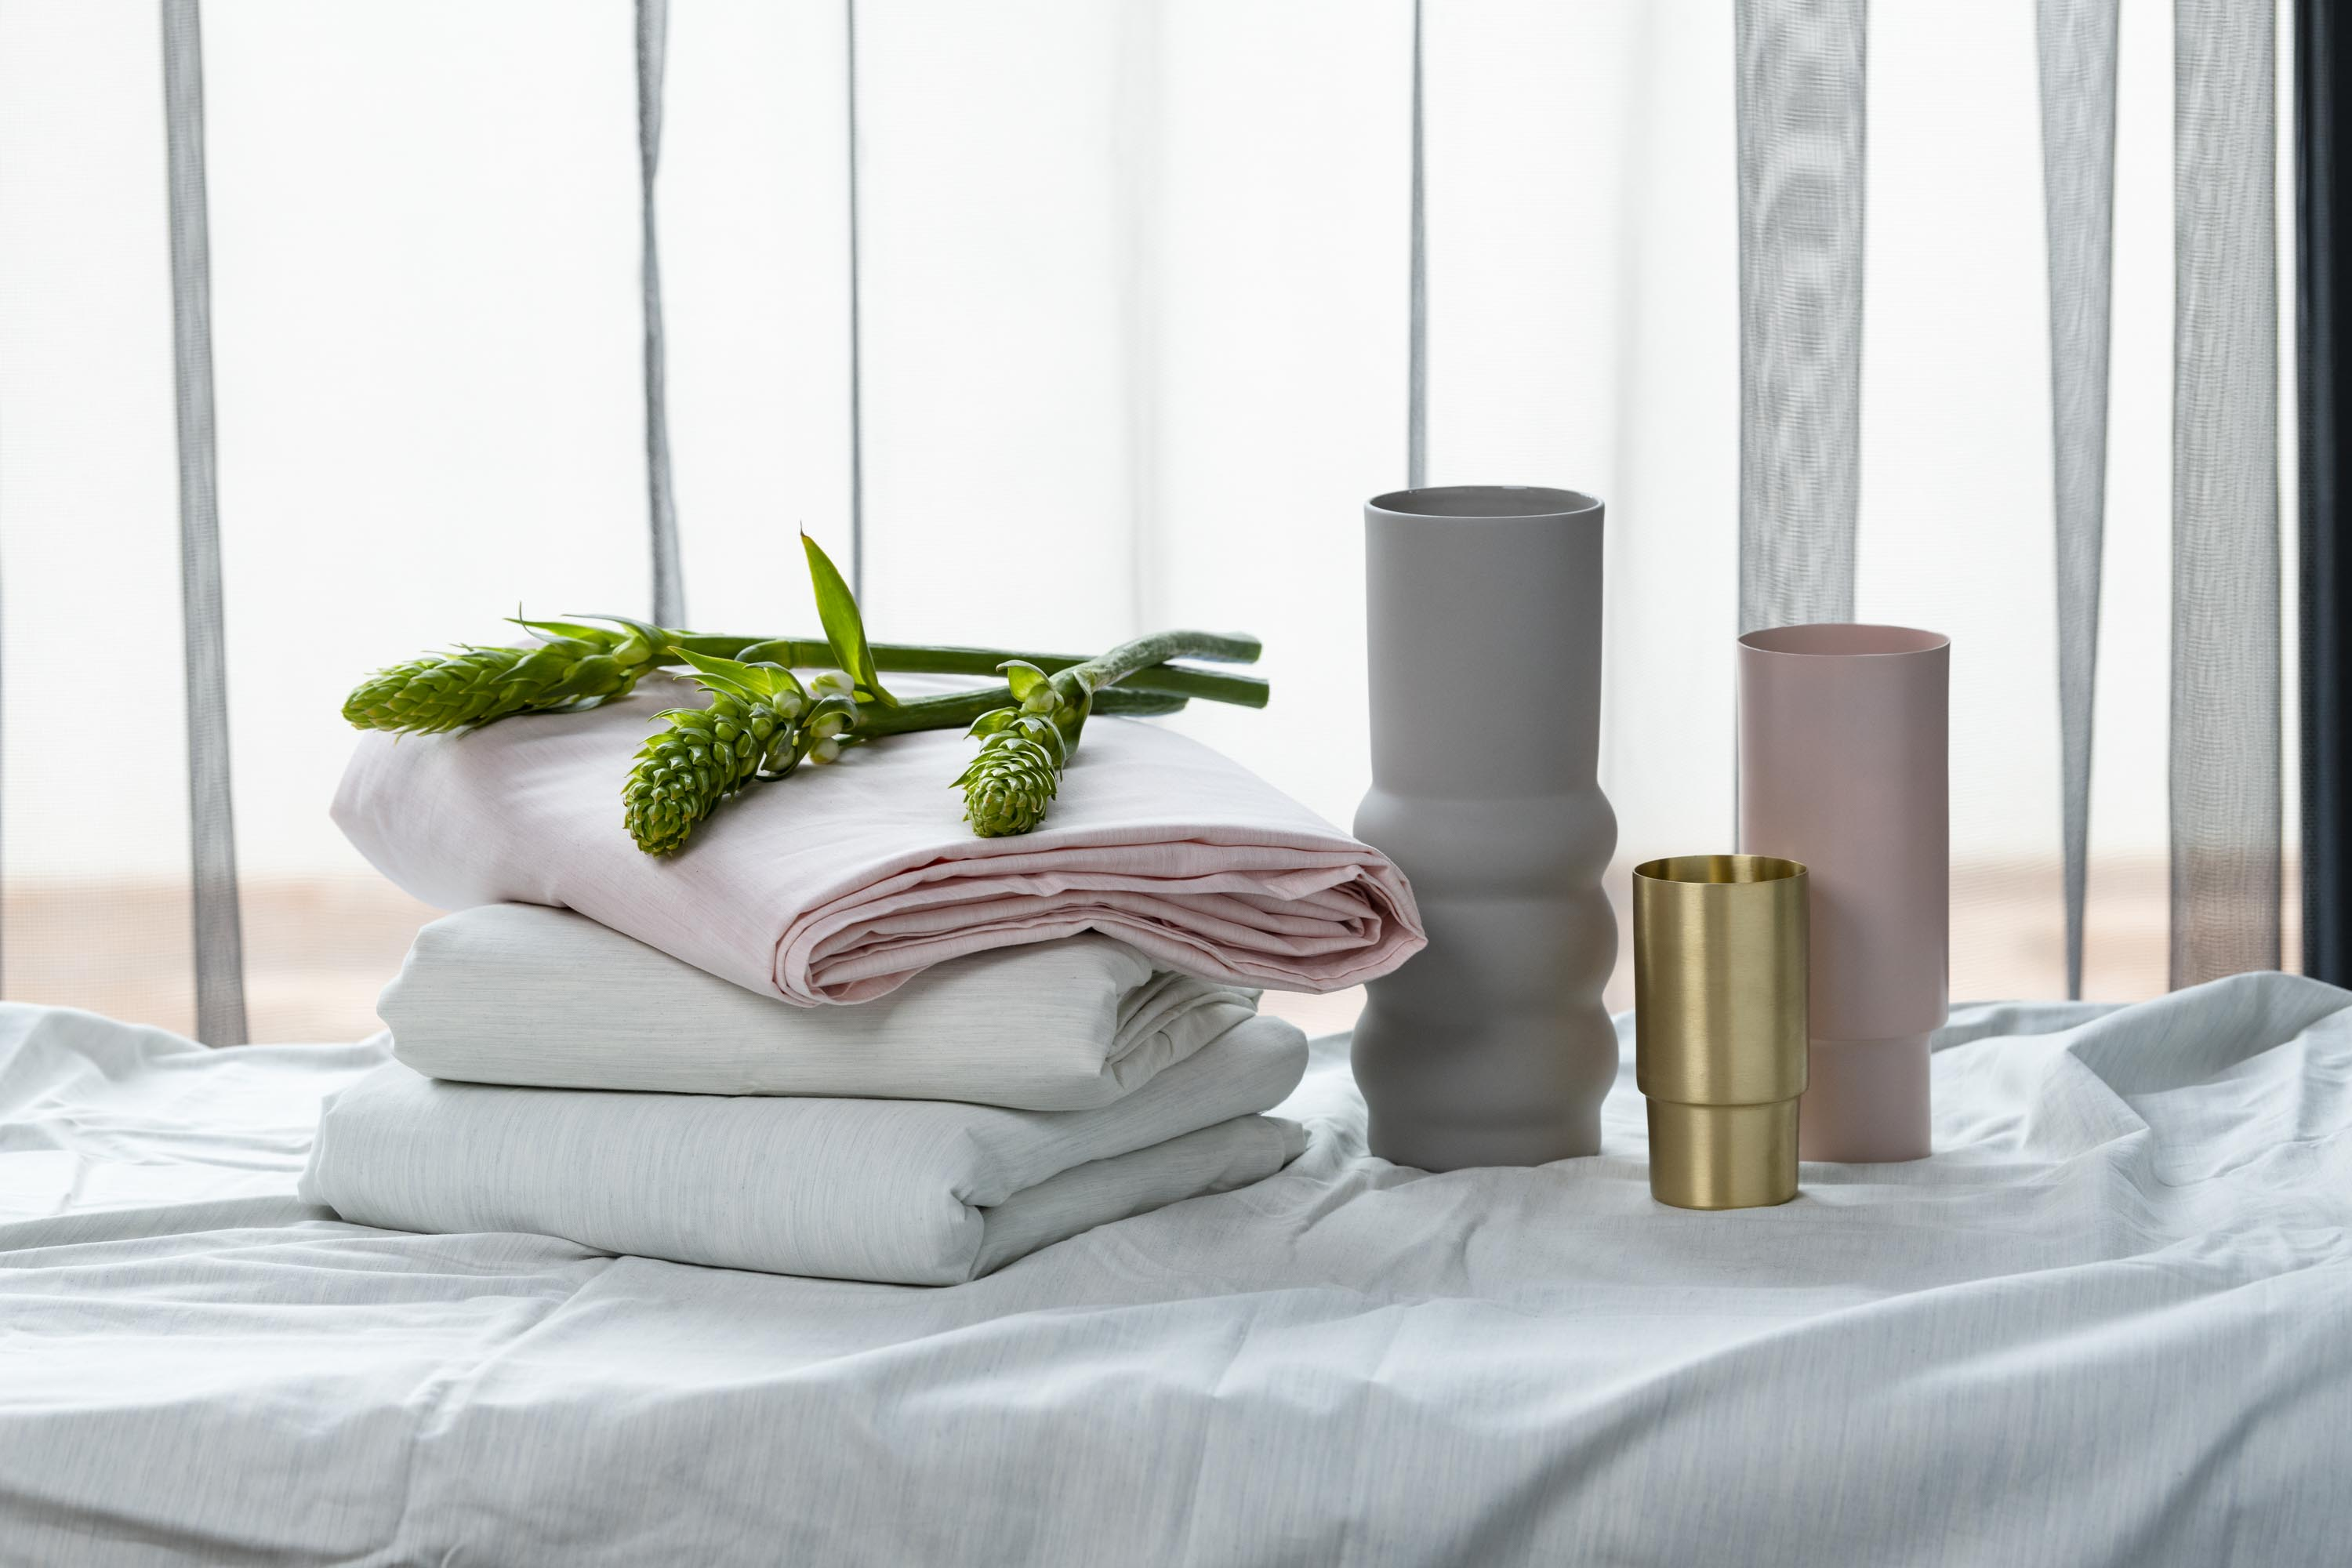 WHAT'S NEW - Plant Dyed Organic Cotton Collection